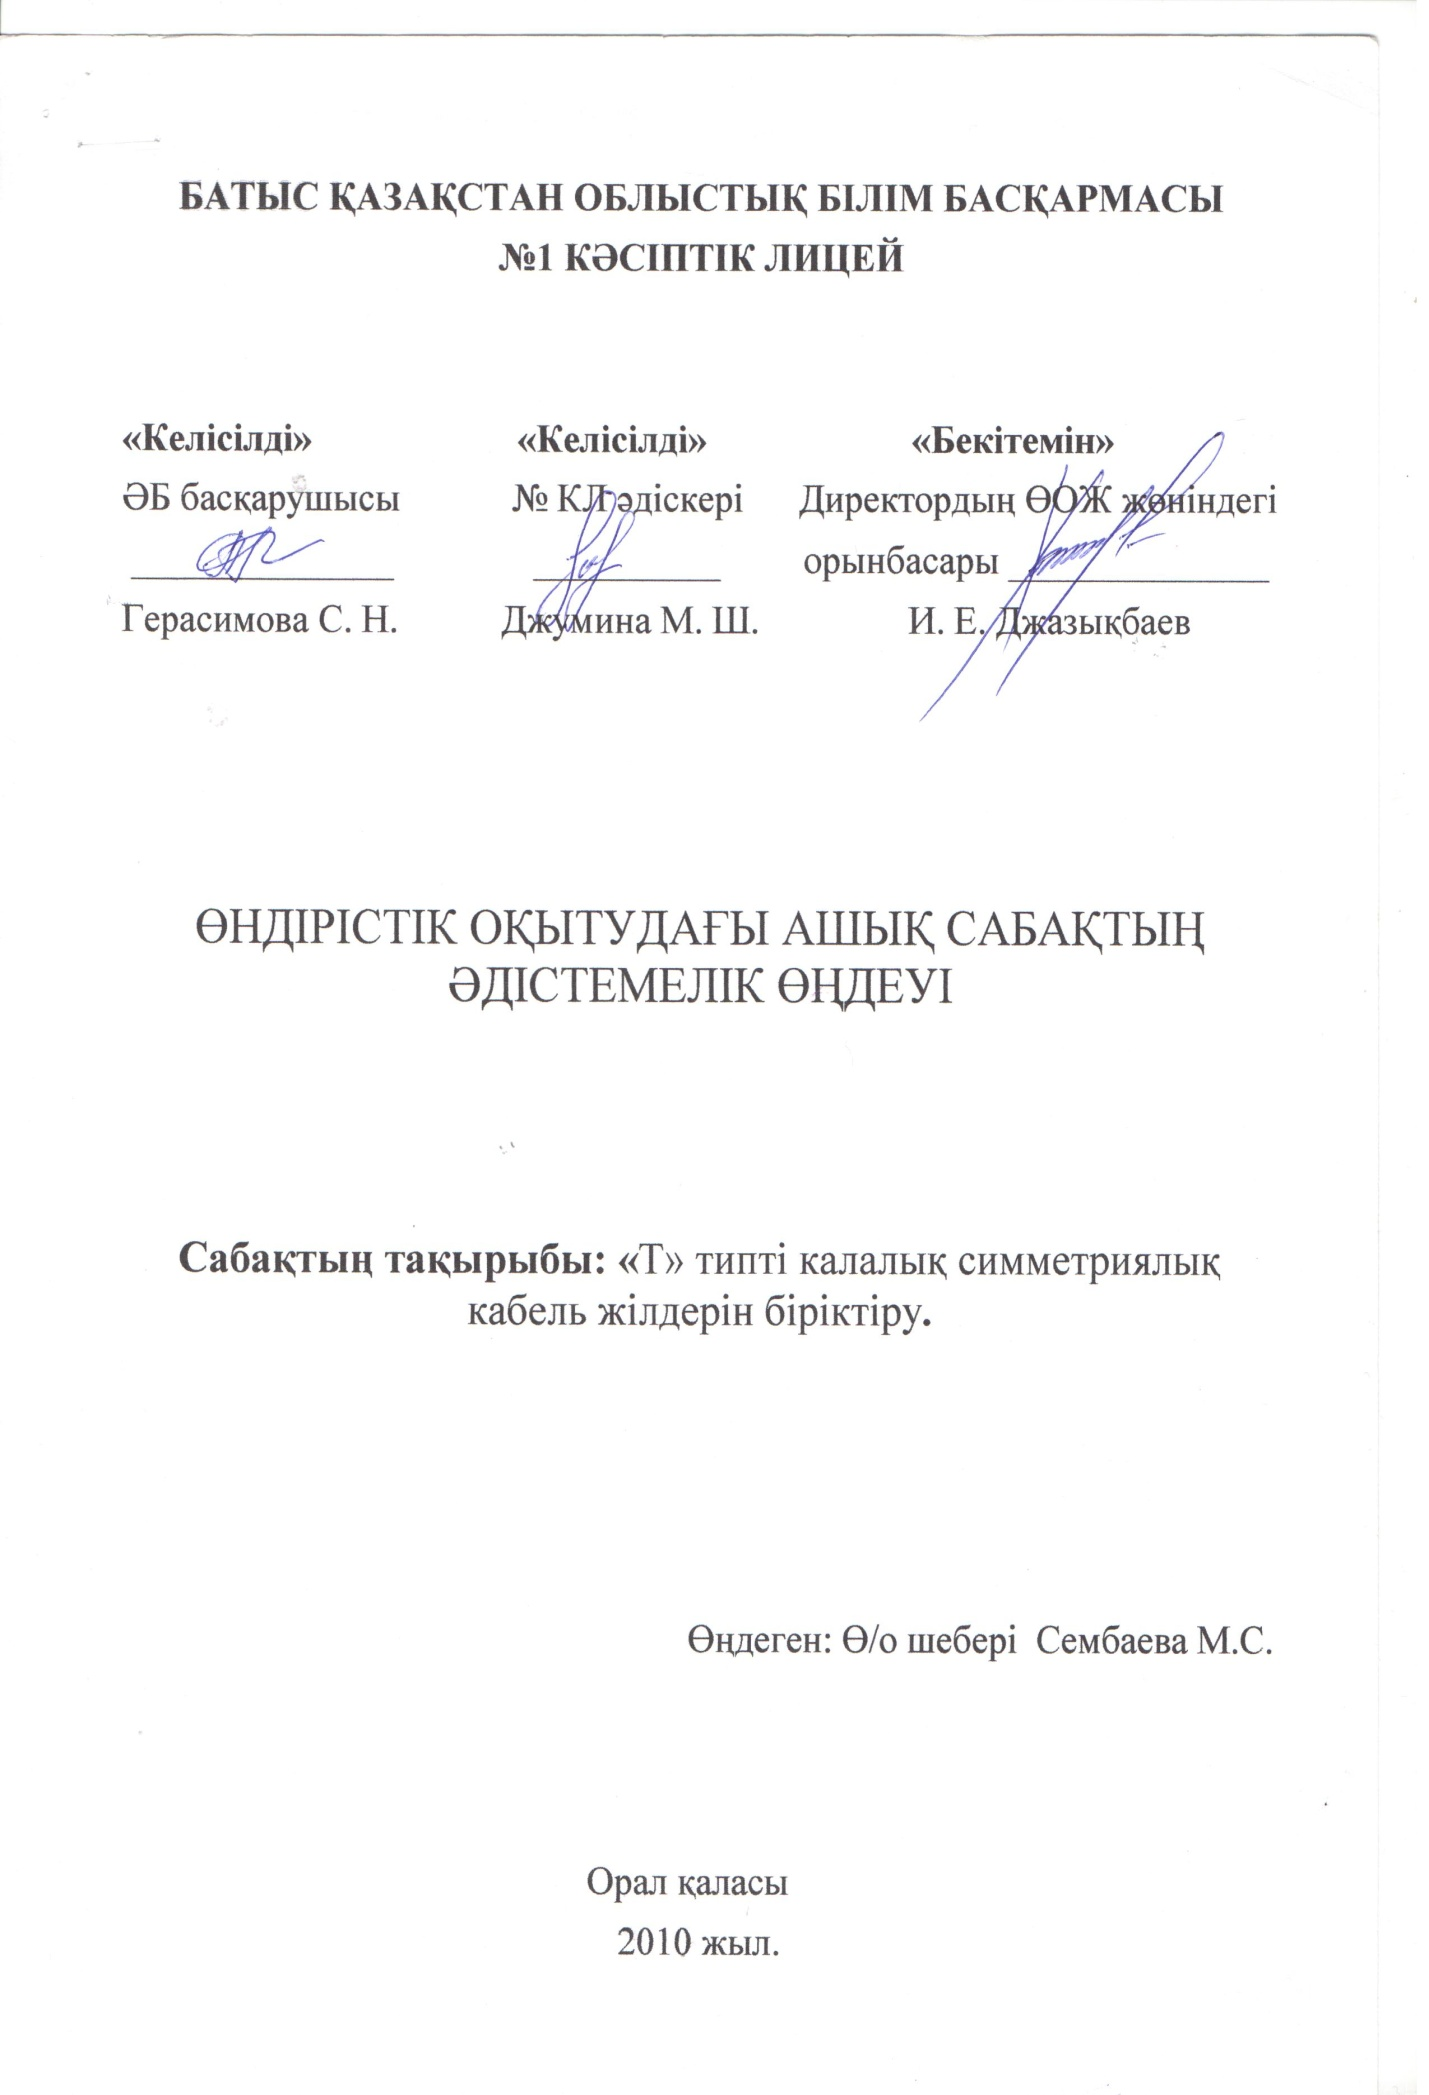 C:\Users\Linovo\Documents\Scanned Documents\Рисунок.jpg